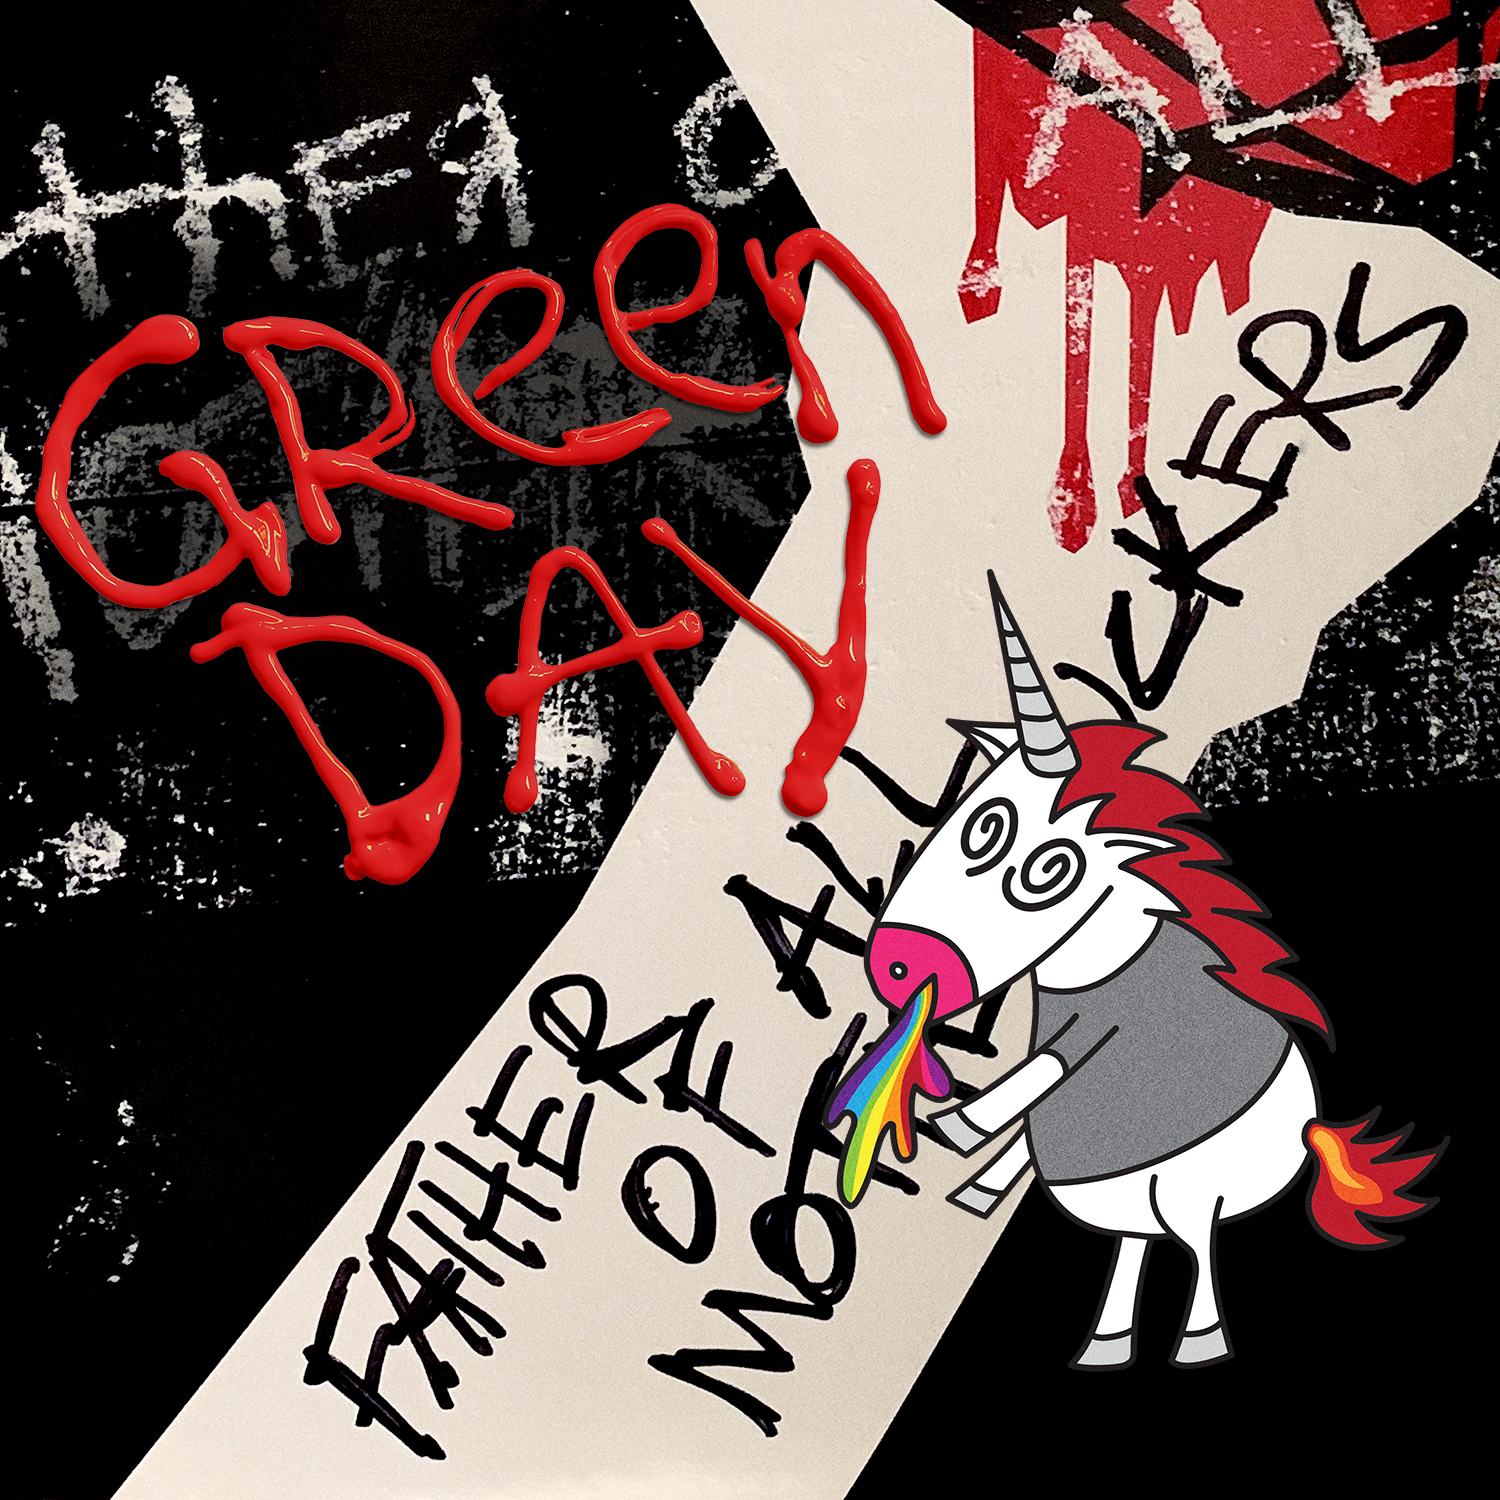 Father Of All by Green Day image